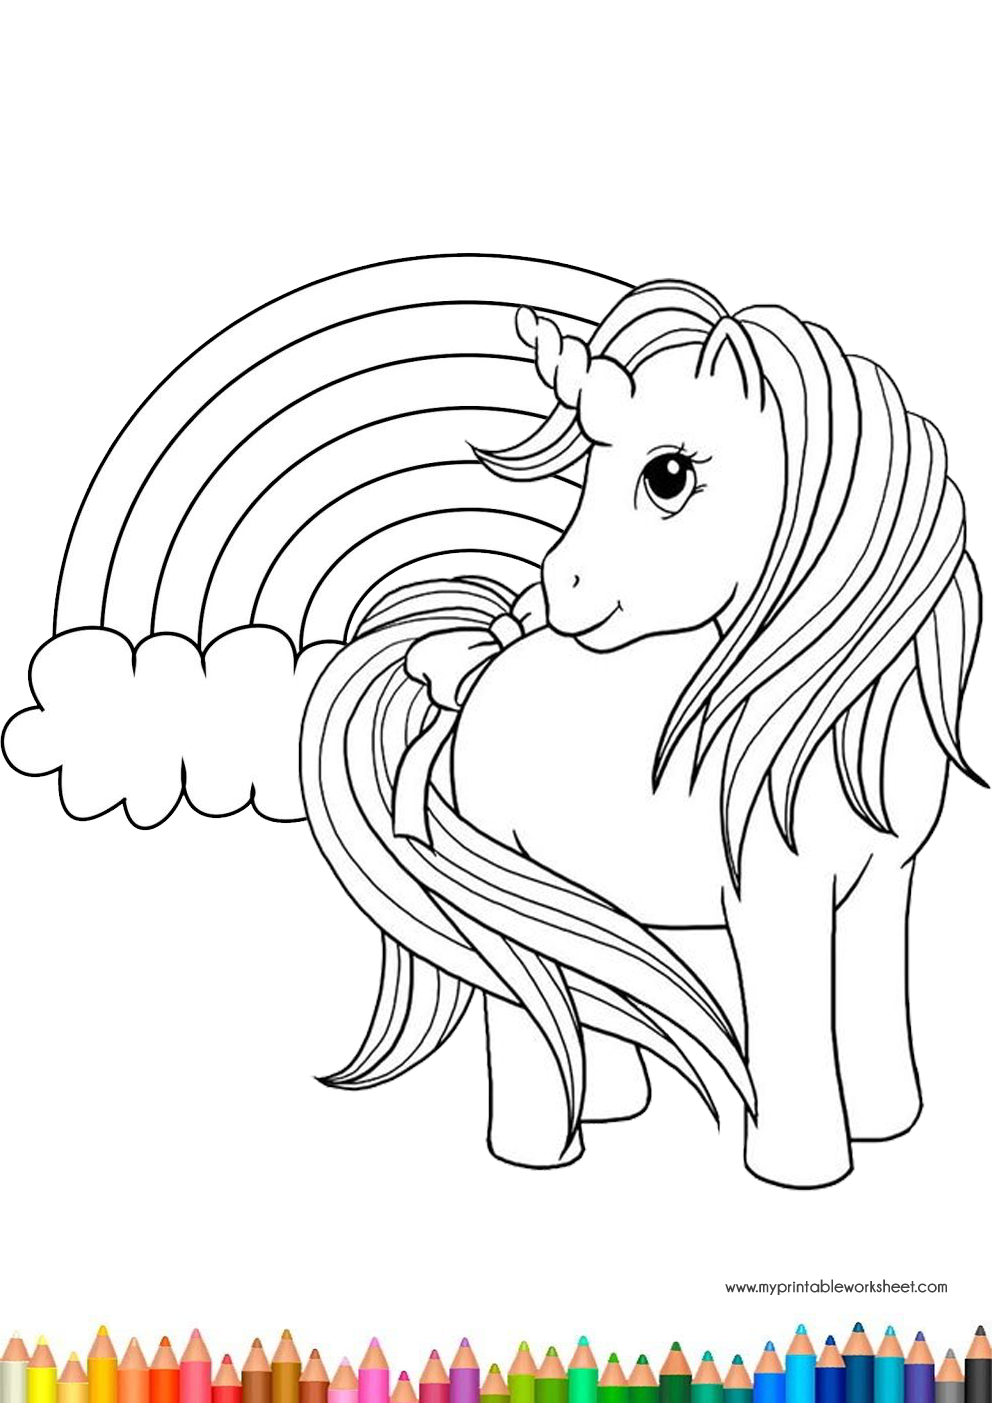 - Easy Cute Unicorn Coloring Pages For Kids And Girls, Printable